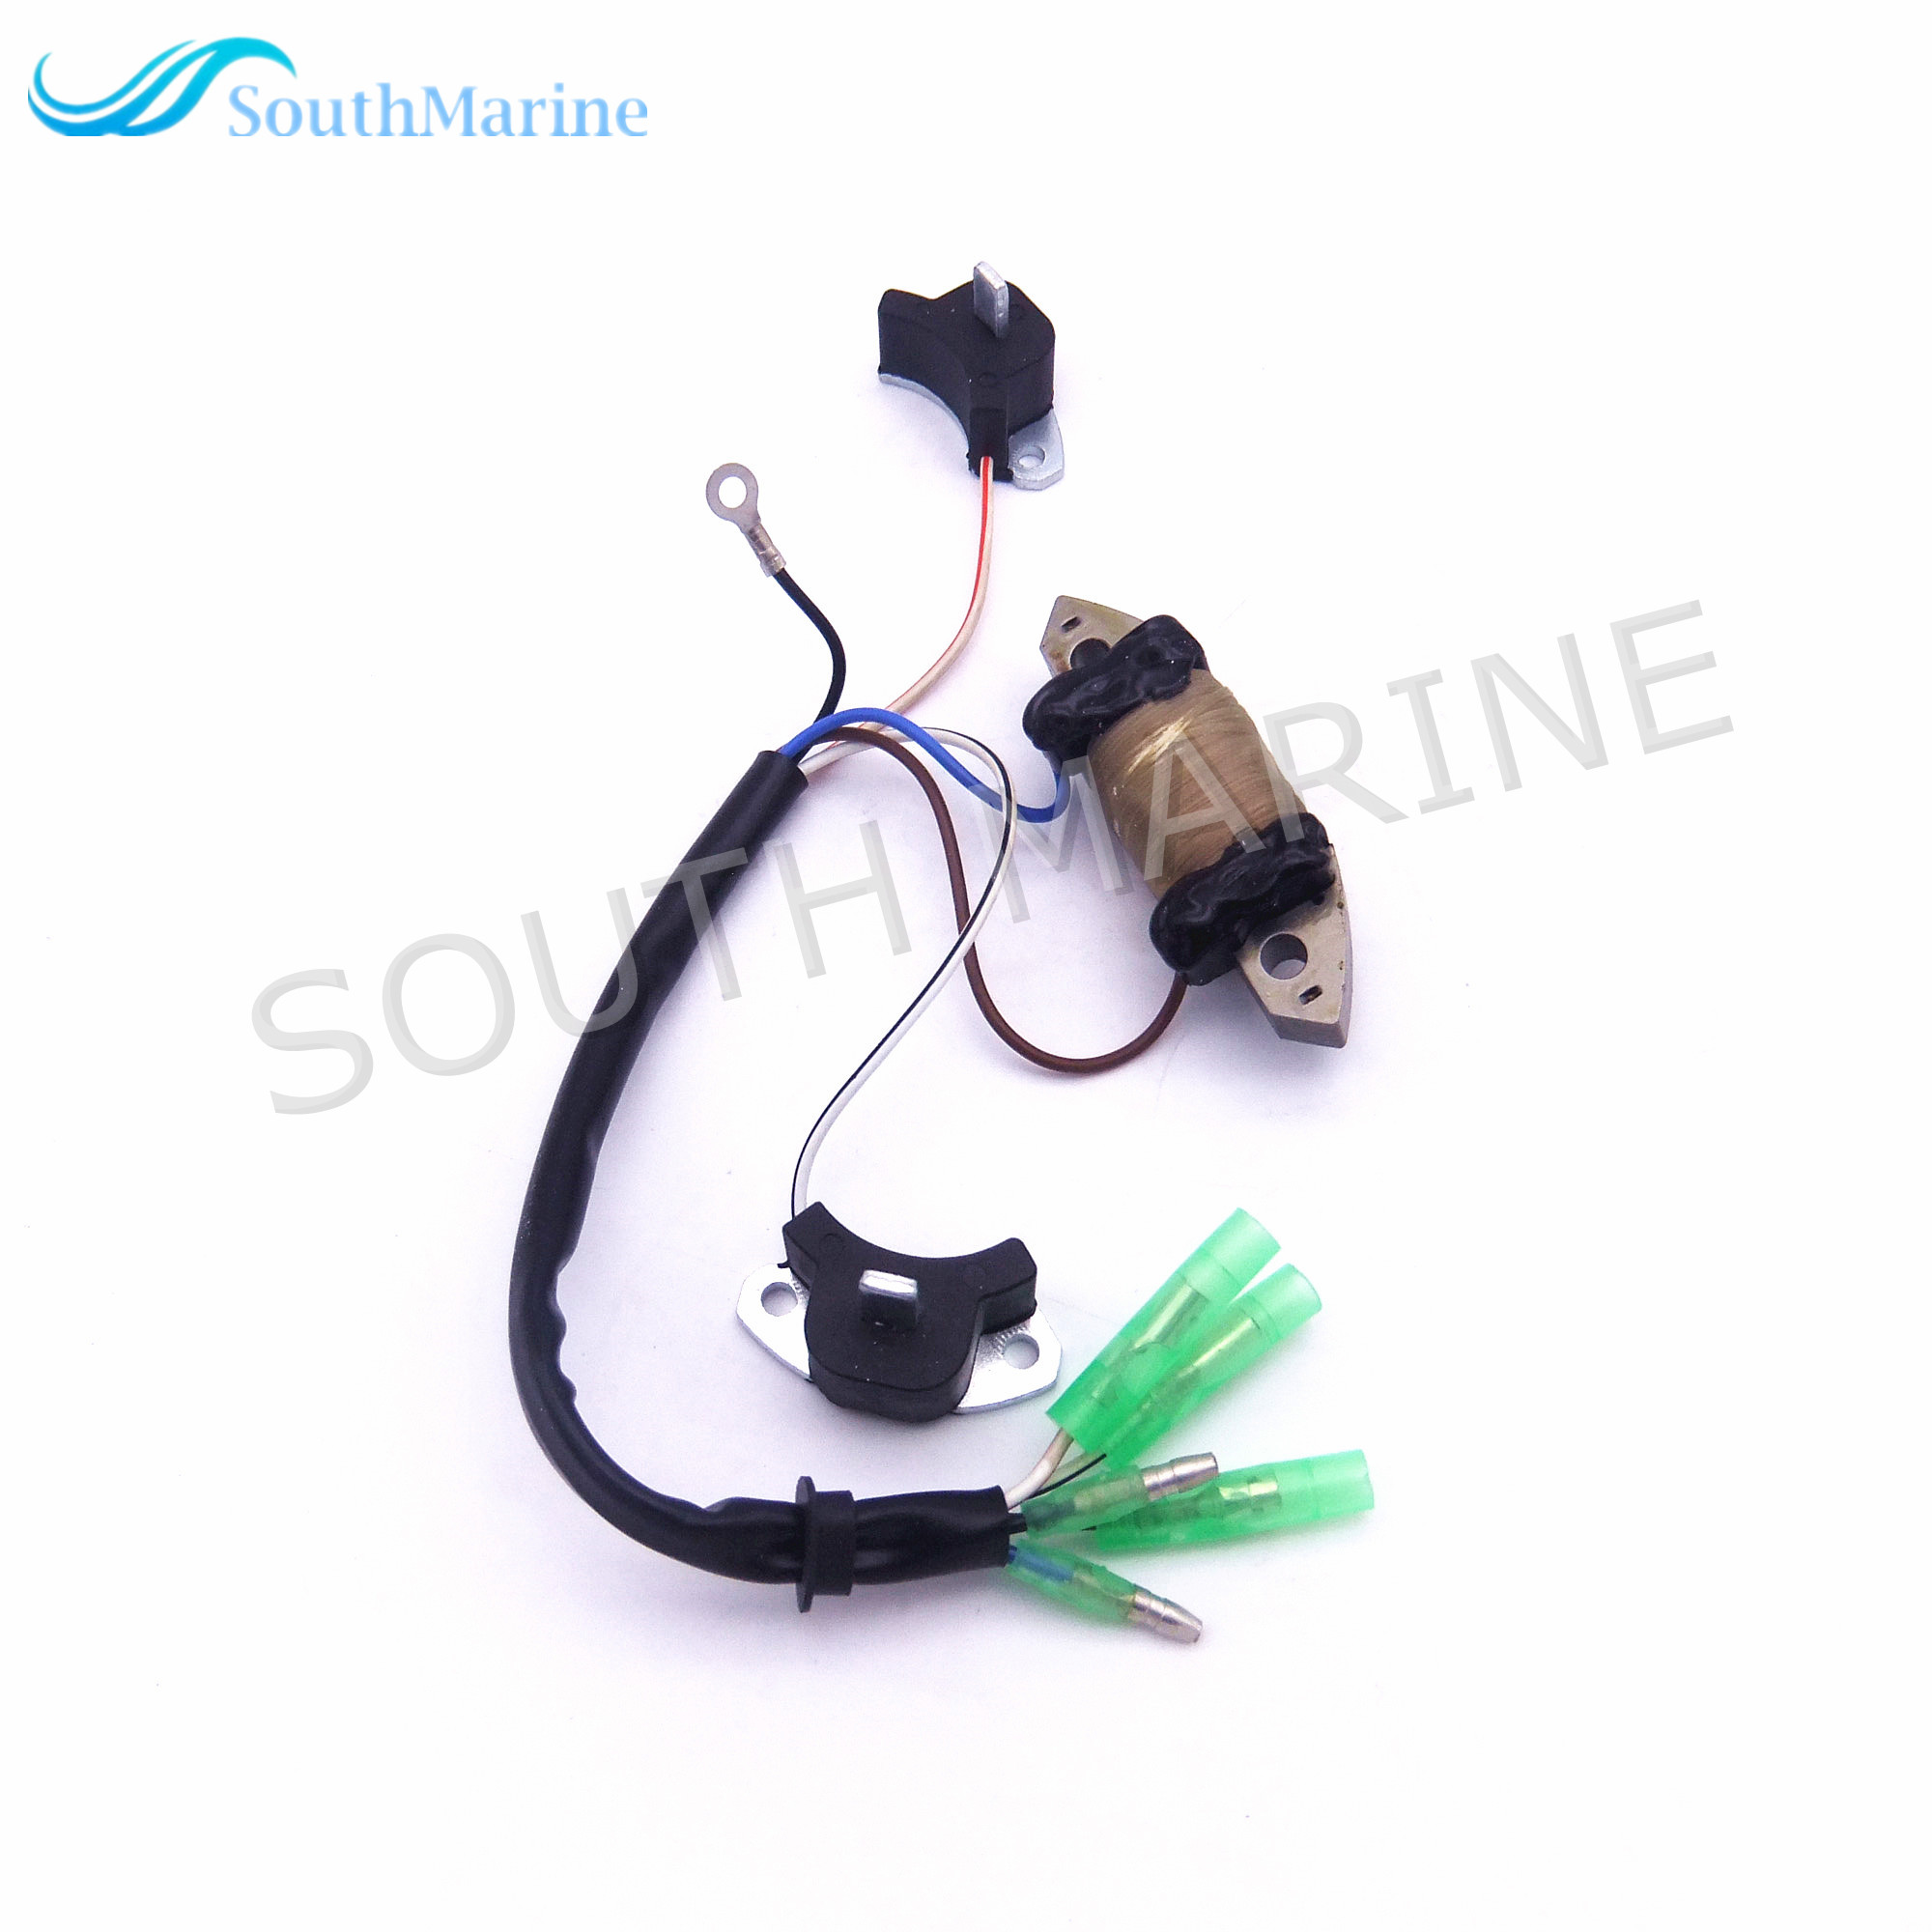 Outboard Engine Power Supply Coil Assy T20 06040200 for Parsun HDX 2 Stroke T20 T25 T30A